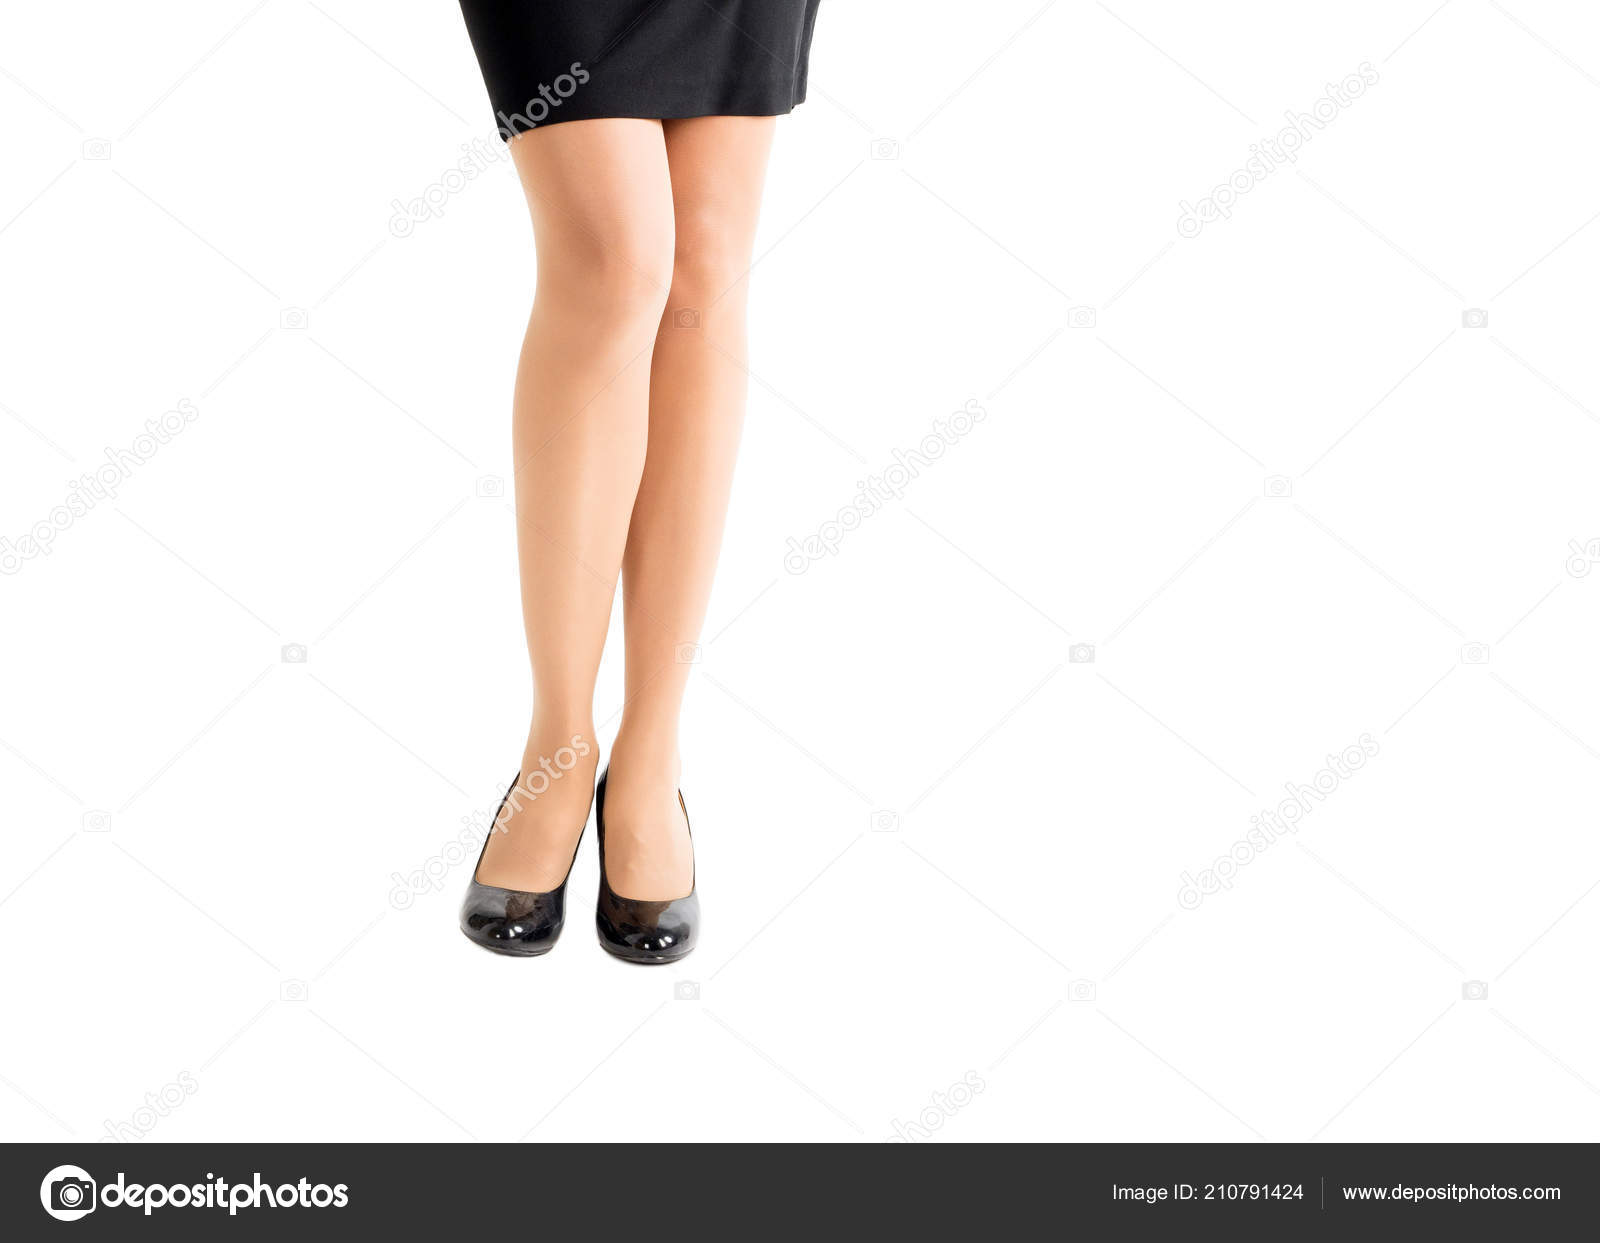 d394a37189f Beautiful female legs in classic black heel shoes and skin color tights